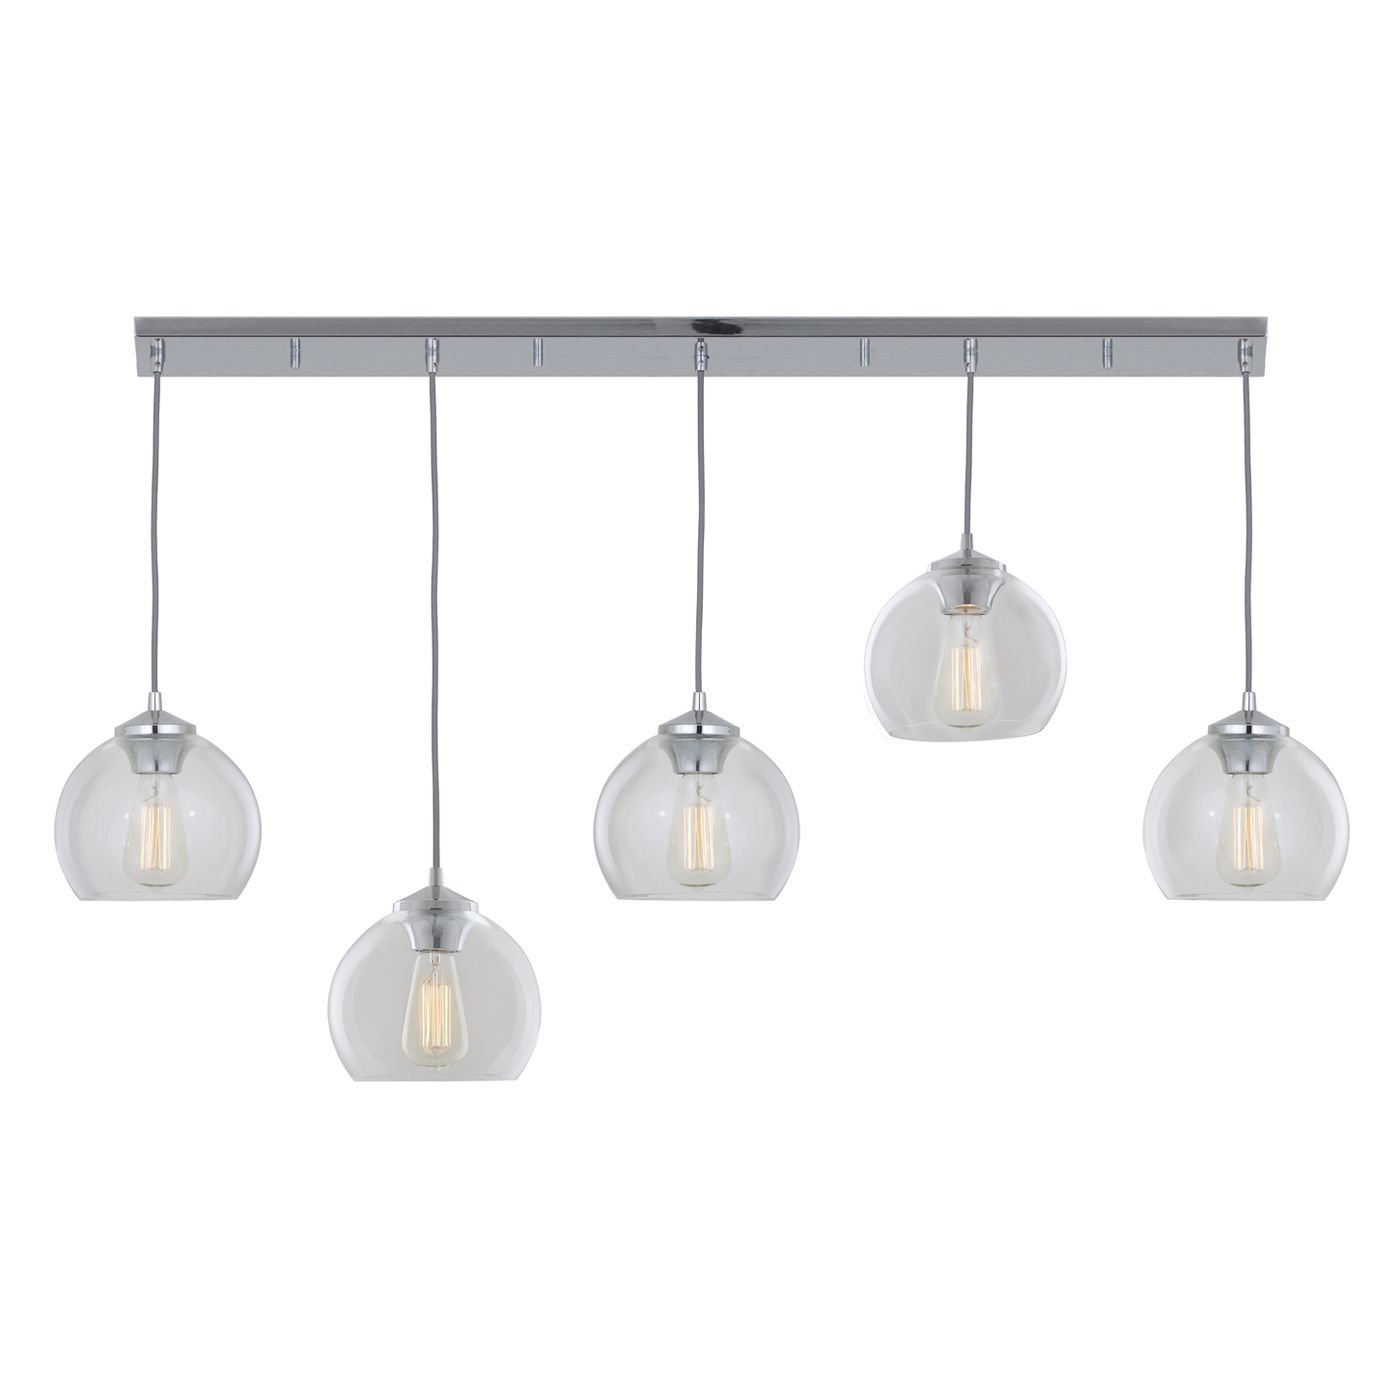 Shop dvi lighting dvp13202 oberon multi light pendant at lowes shop dvi lighting dvp13202 oberon multi light pendant at lowes canada find our selection of mozeypictures